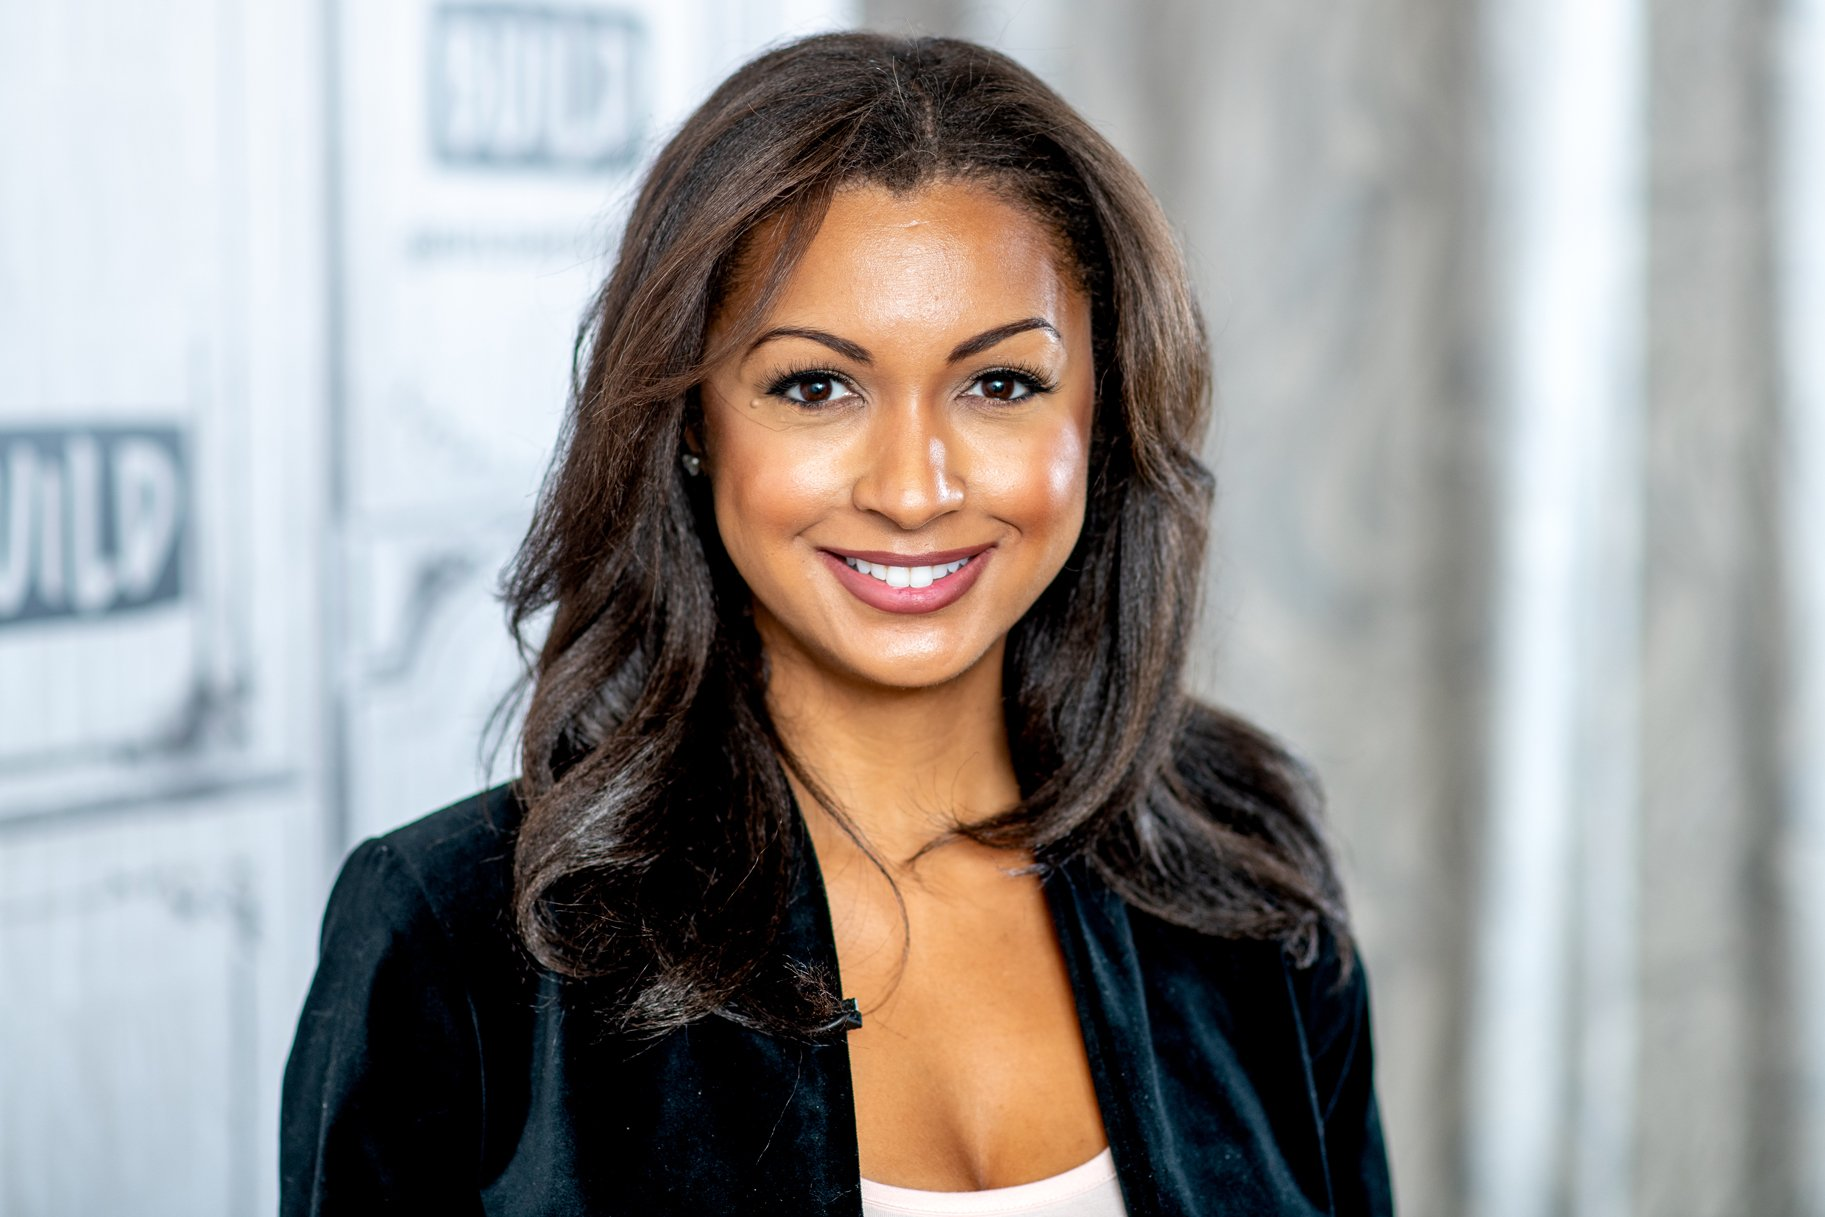 Eboni K. Williams Spills The Tea On Season 13 Of RHONY – The Newcomer Claims There Will Be A Lot Of Drama!